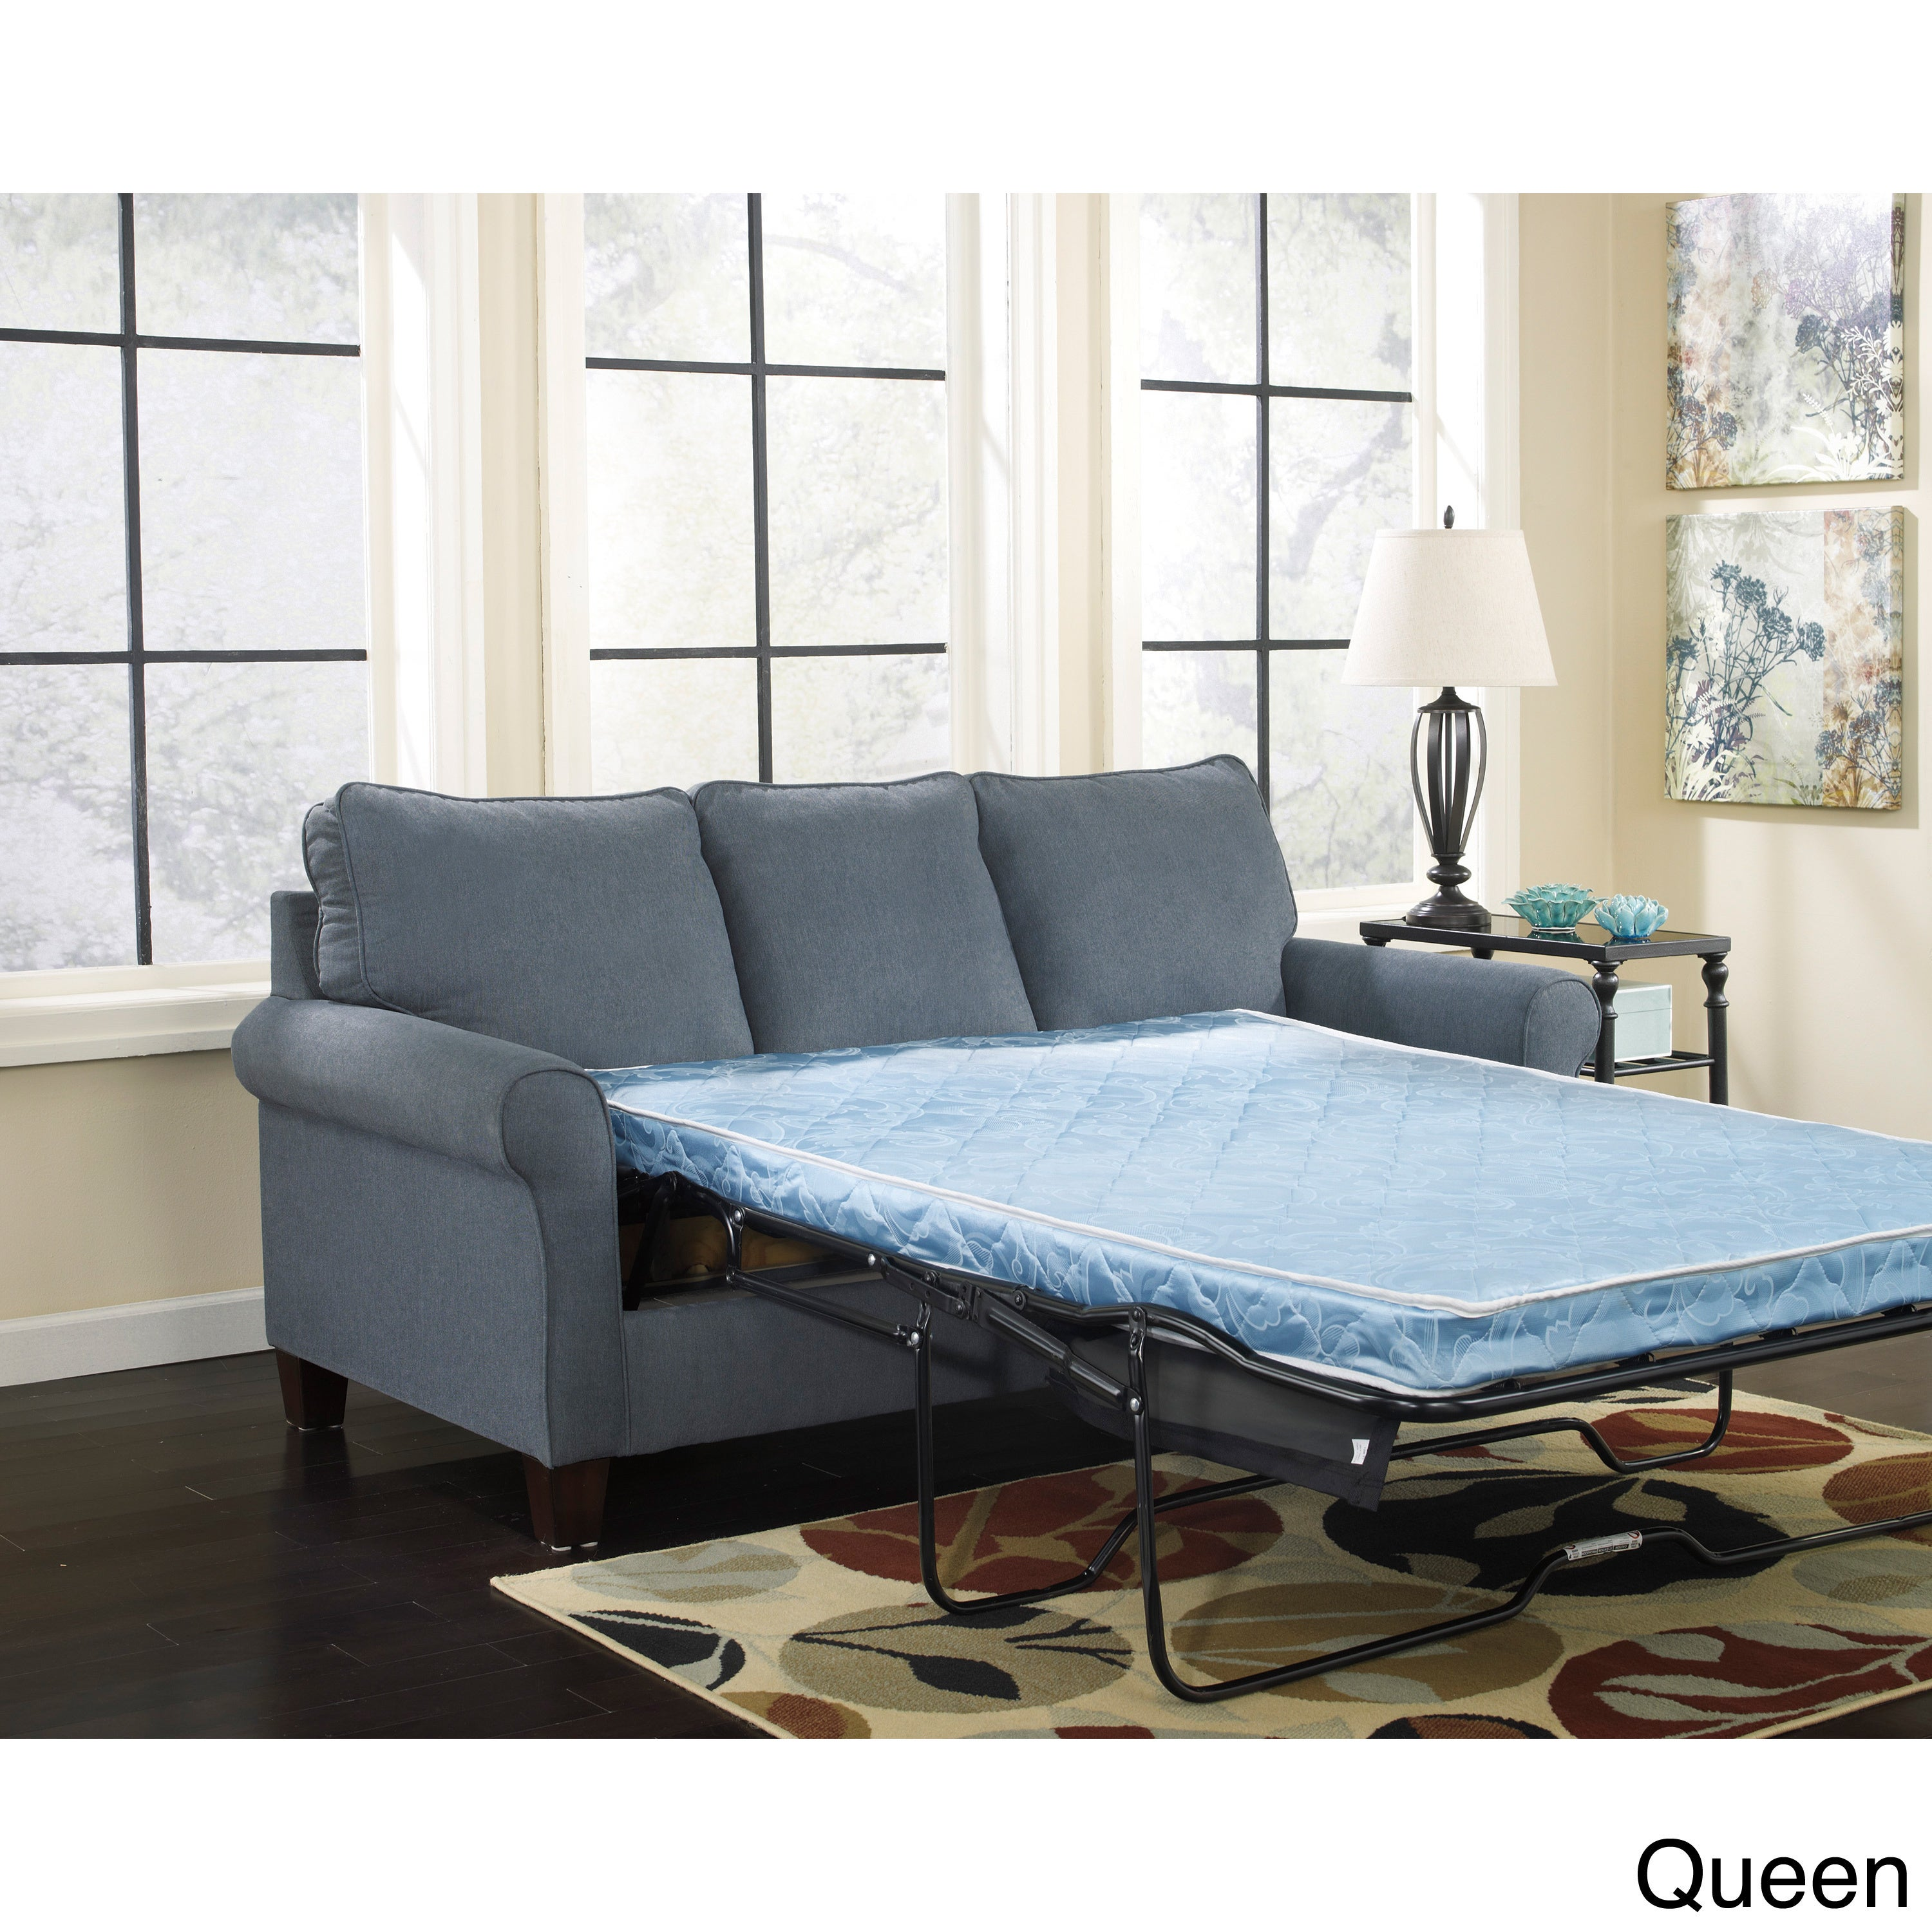 Attractive Signature Design By Ashley Zeth Denim Sleeper Sofa   Free Shipping Today    Overstock.com   16117602